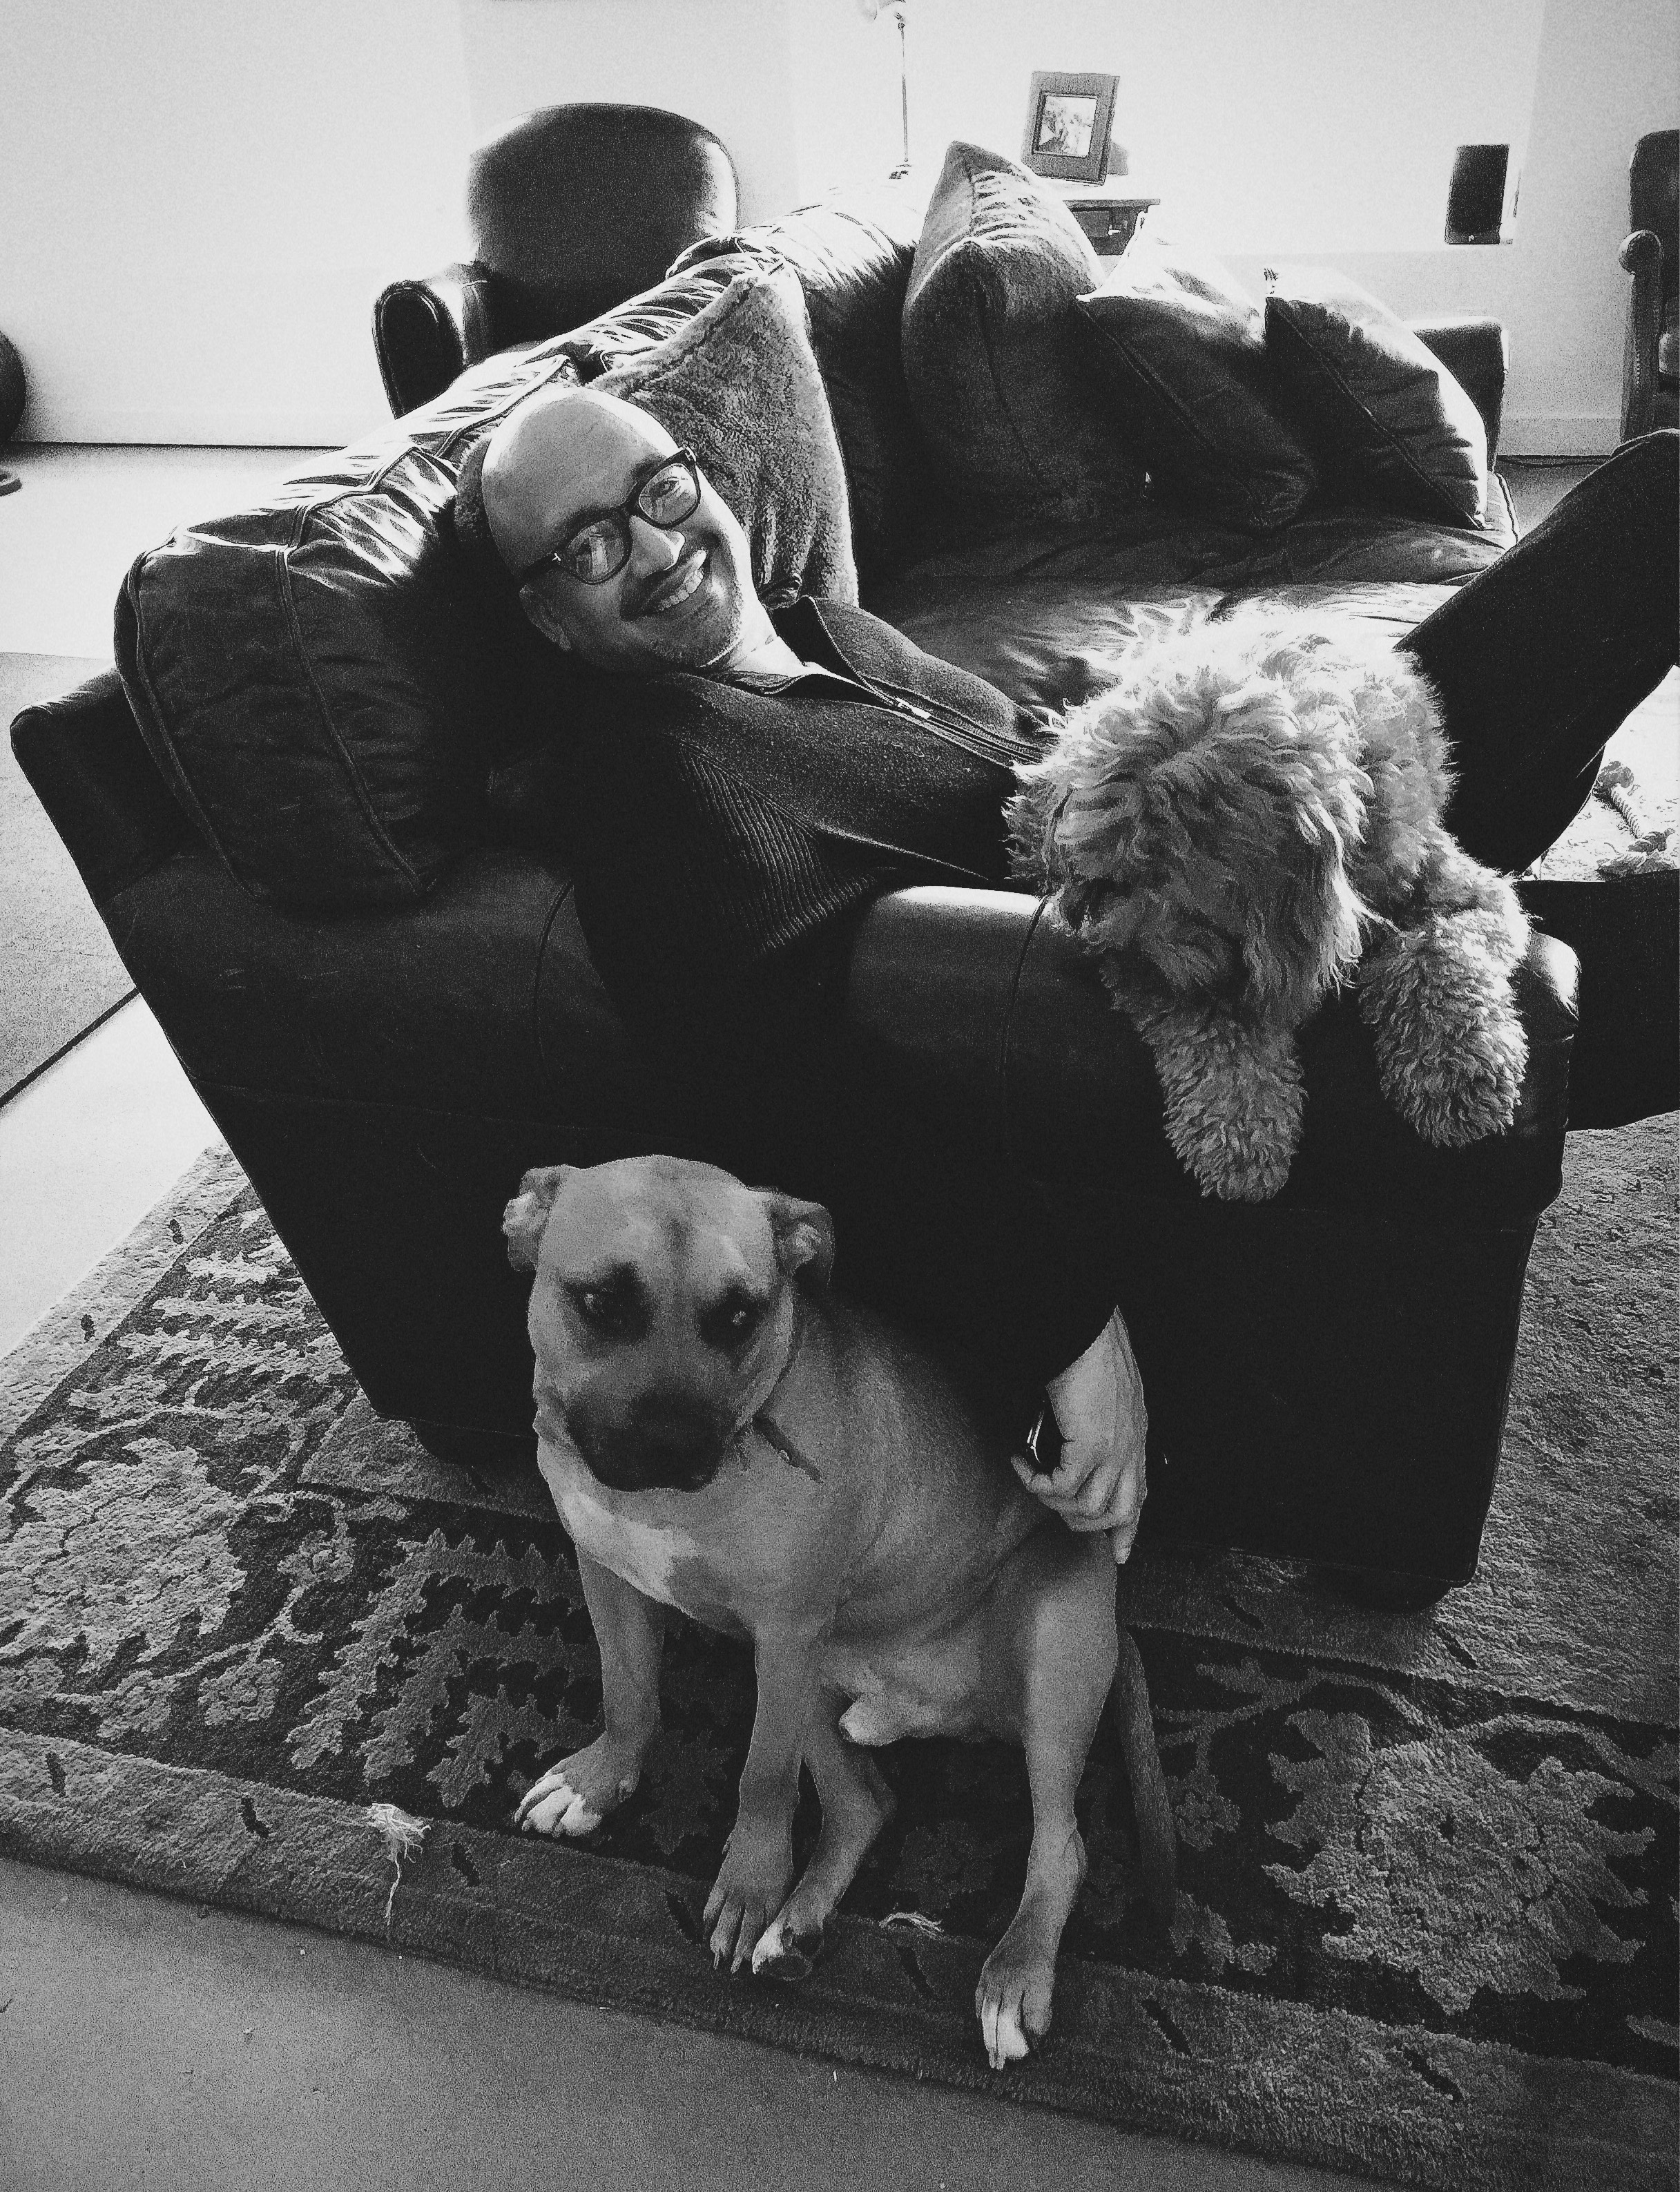 Michael Stradford lounging with Raj and Teddy, December 2015.